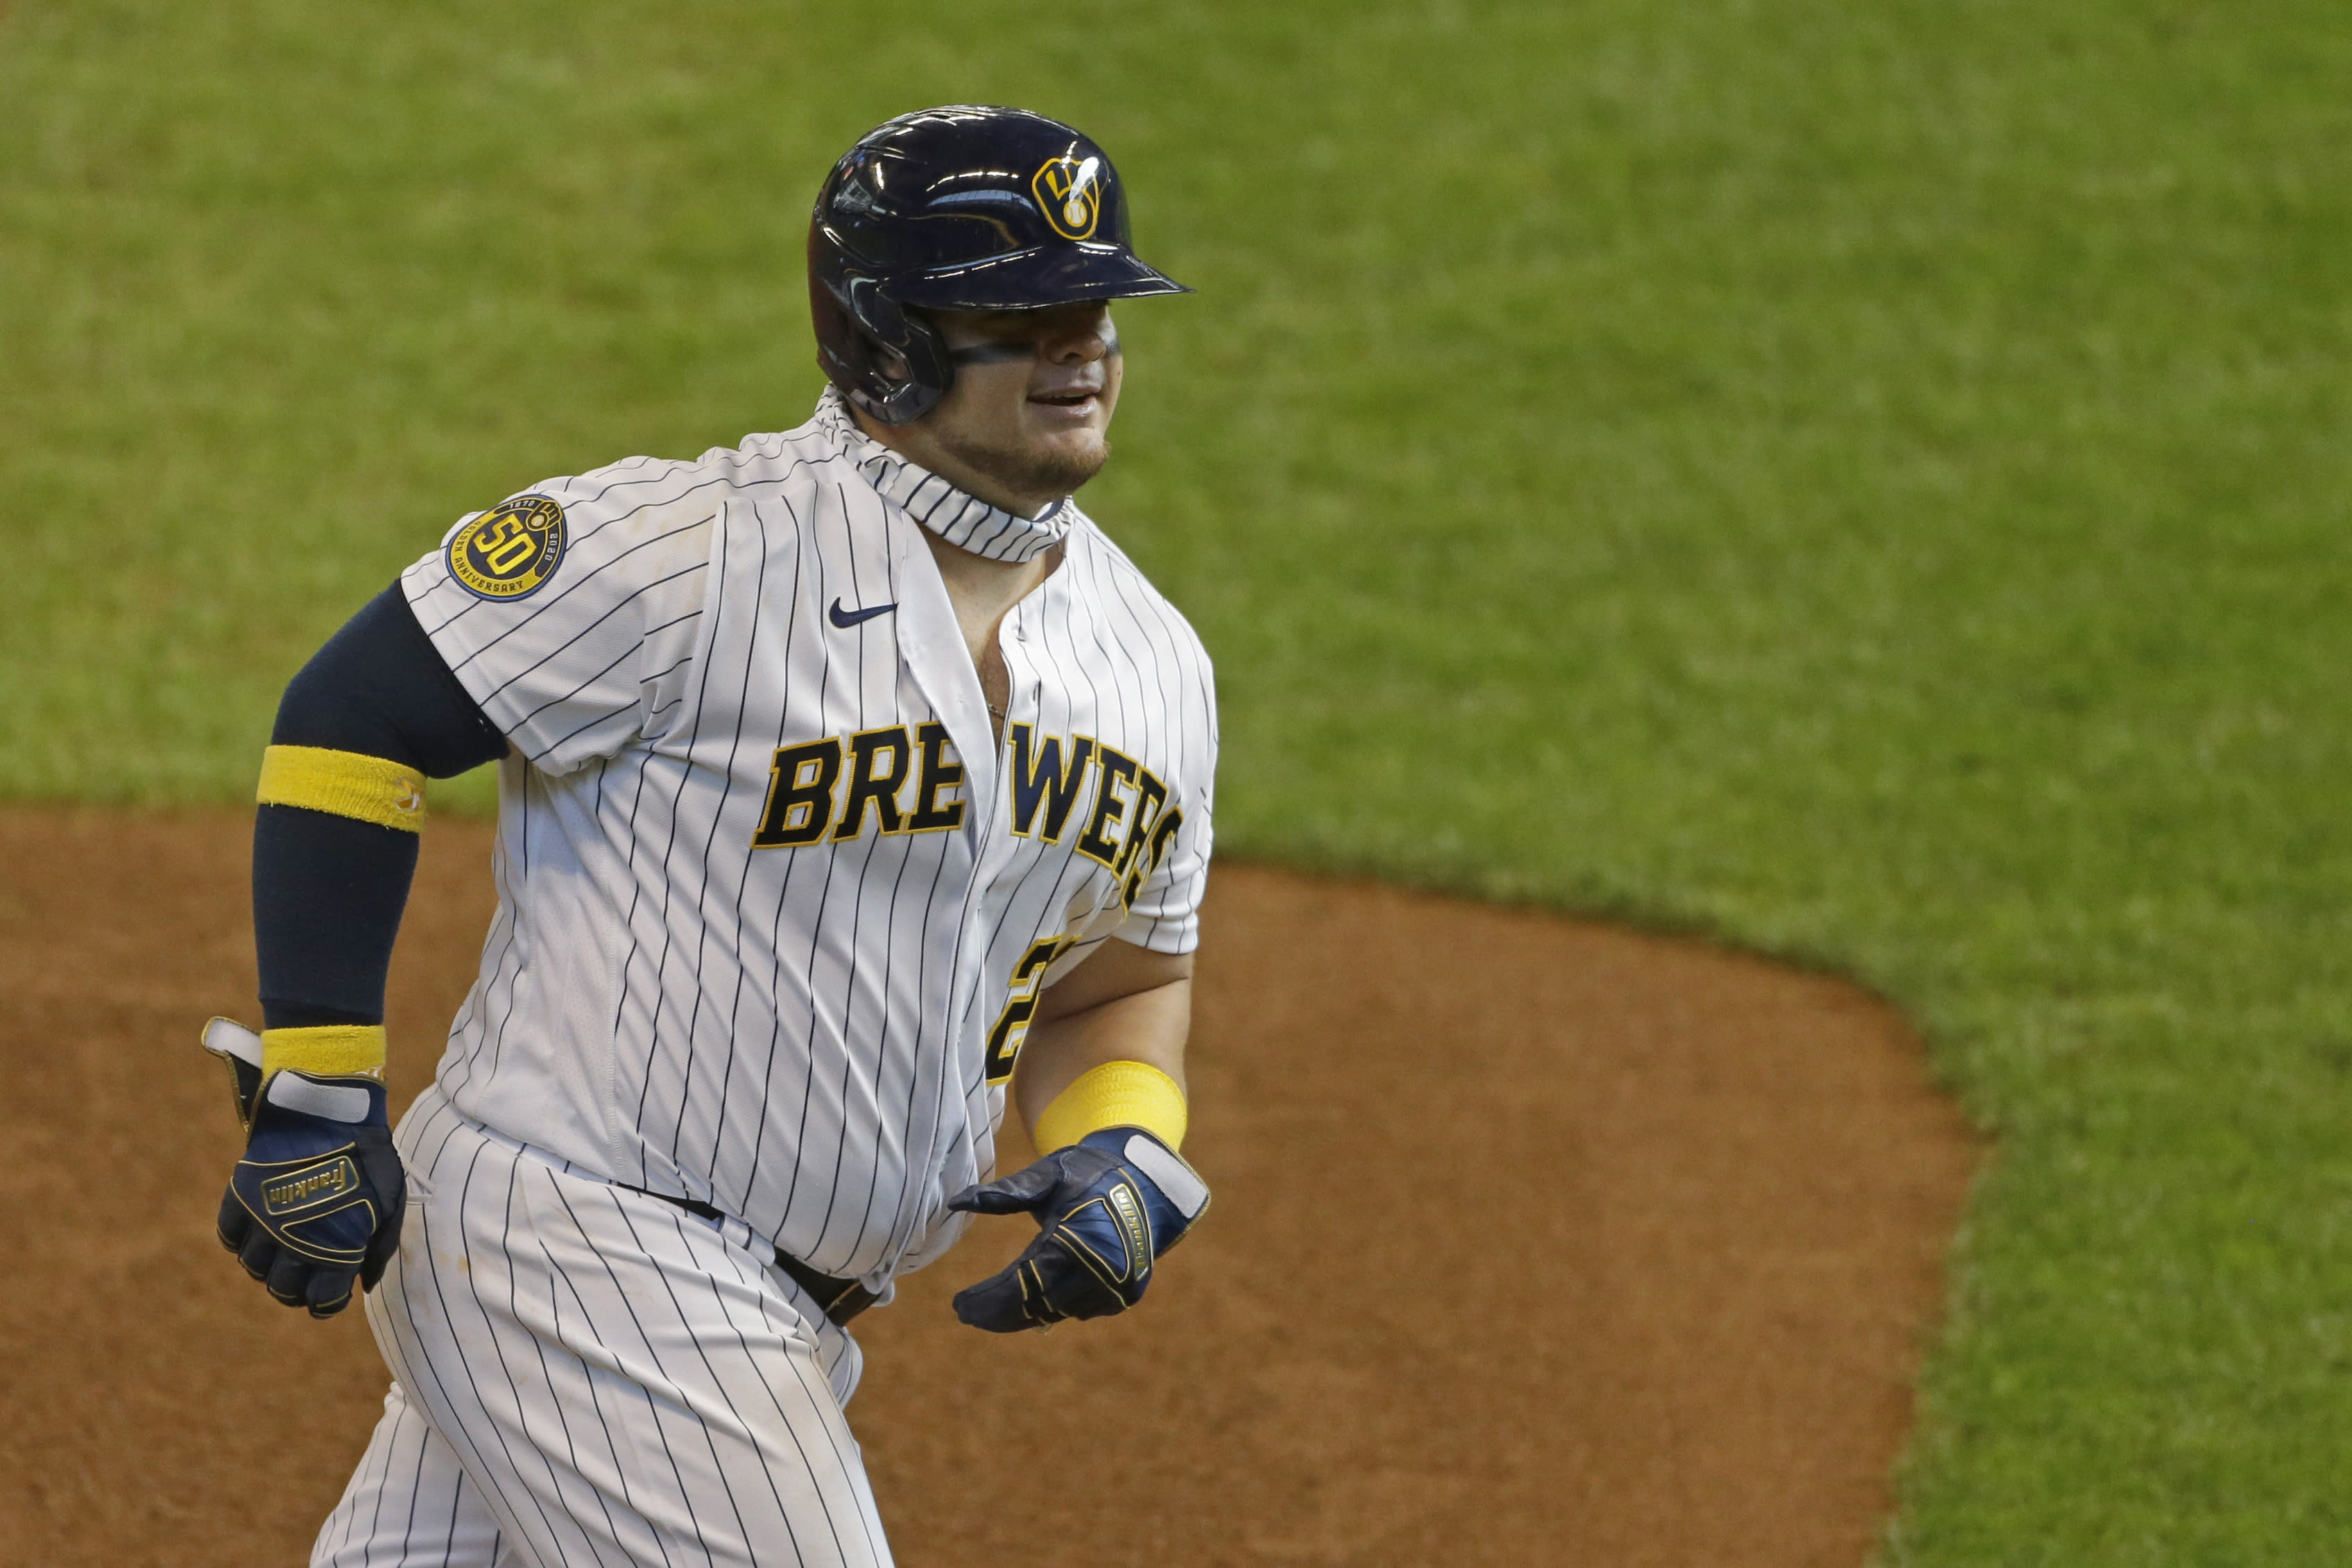 Milwaukee Brewers' Daniel Vogelbach smiles as he rounds third base after hitting a three-run home run during the sixth inning of a baseball game against the Kansas City Royals Sunday, Sept. 20, 2020, in Milwaukee. (AP Photo/Aaron Gash)